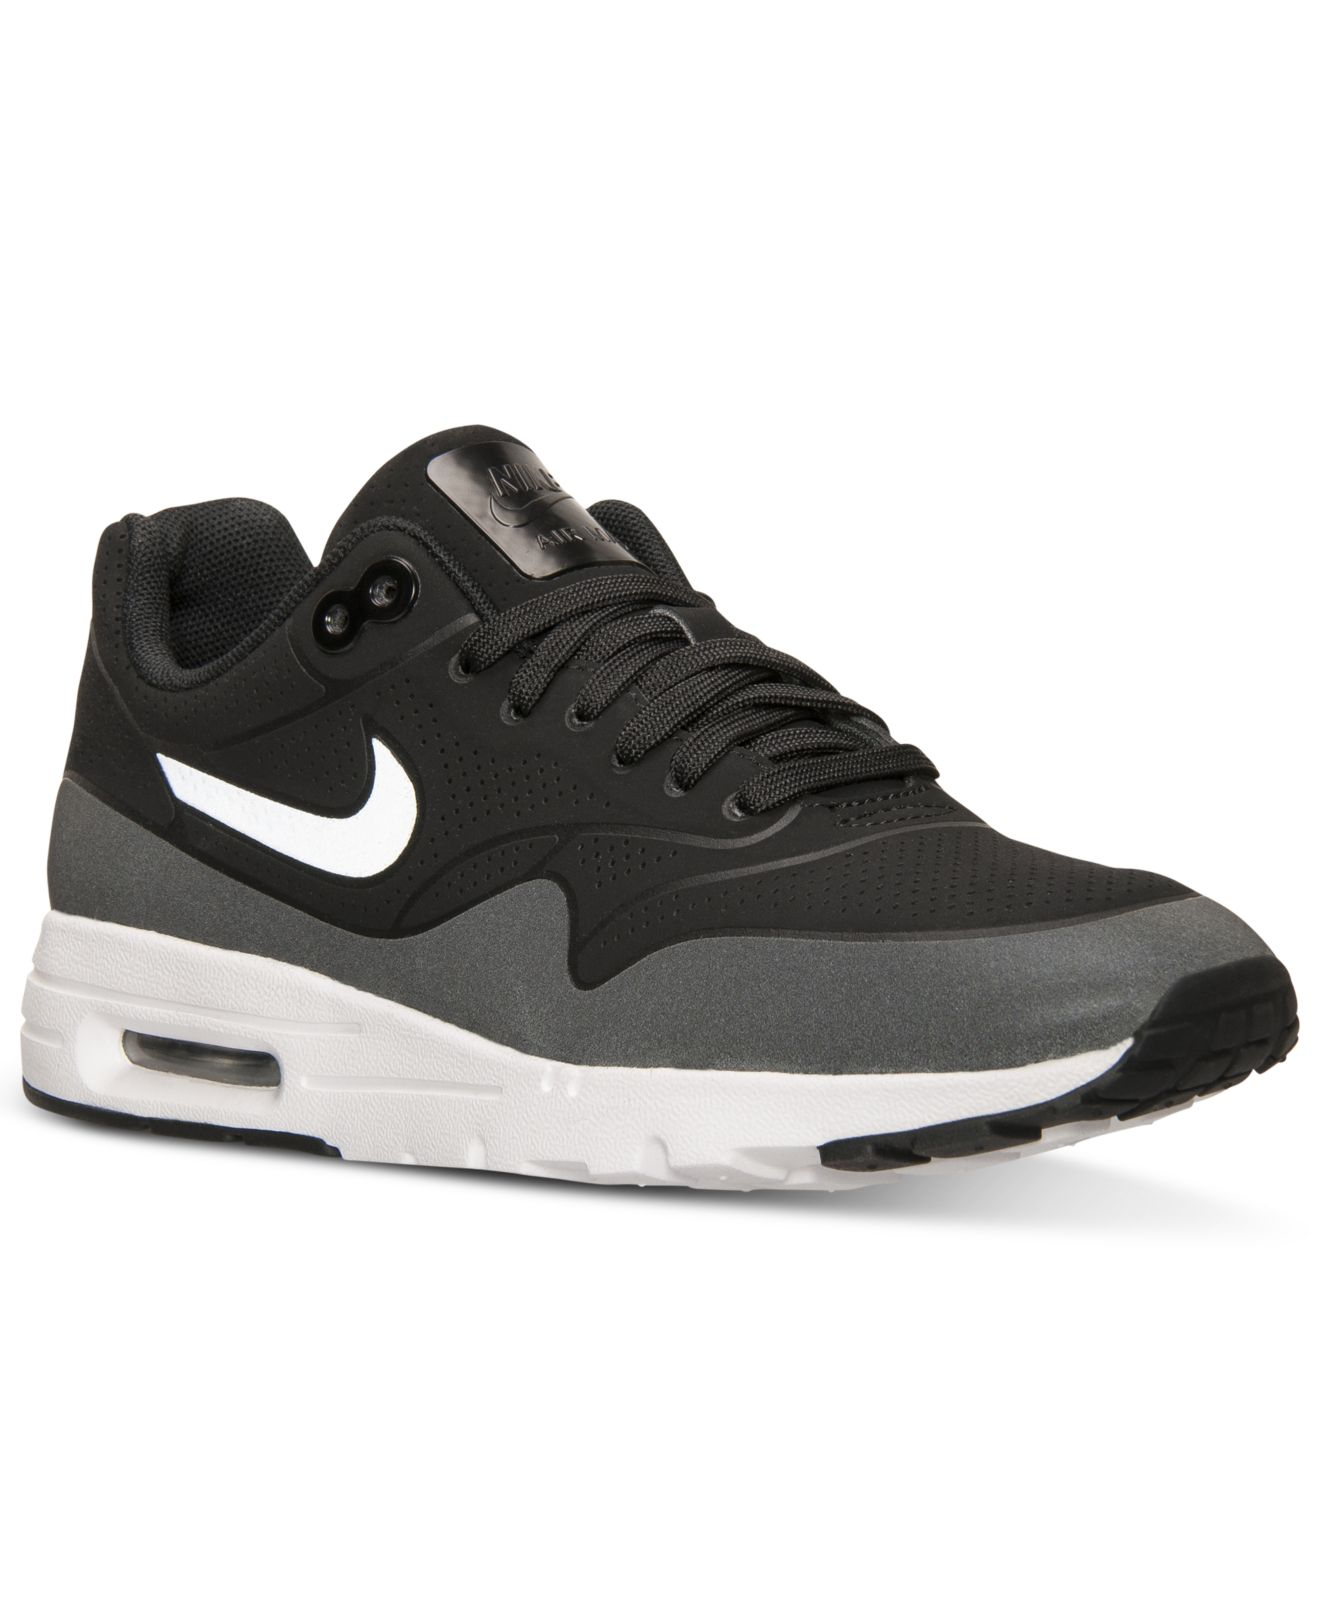 nike women 39 s air max 1 ultra moire running sneakers from. Black Bedroom Furniture Sets. Home Design Ideas